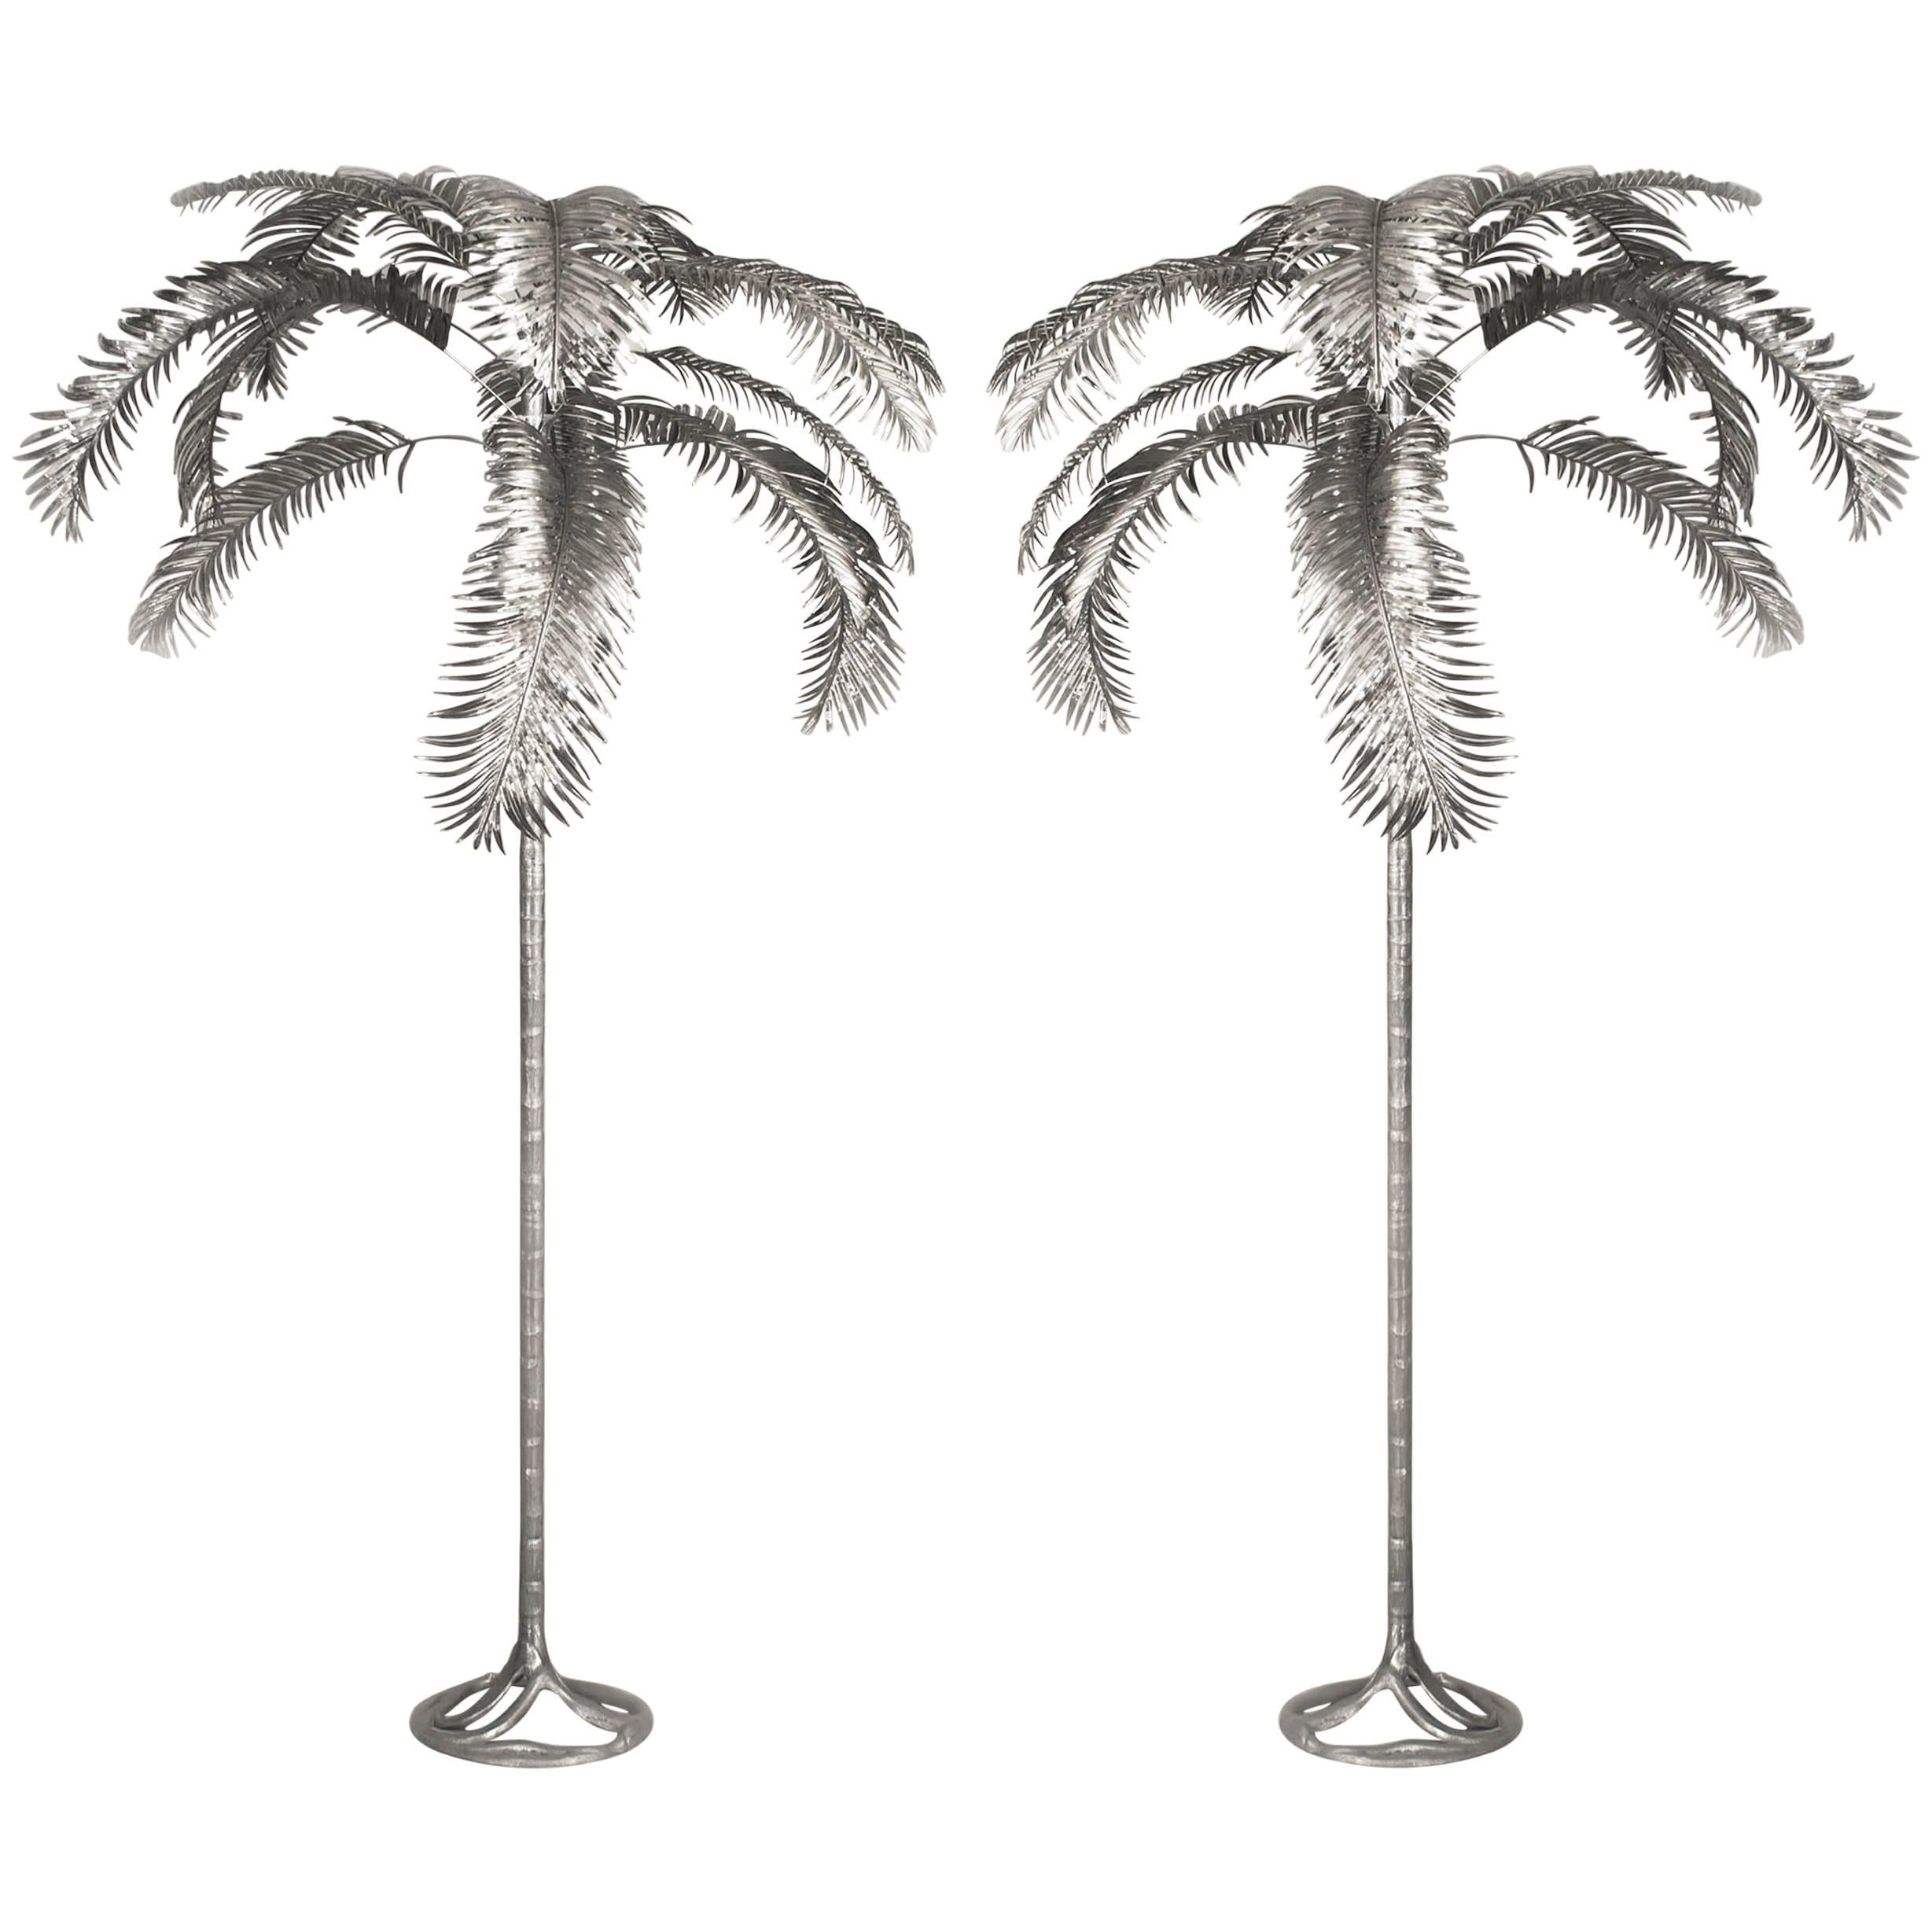 Pair of Monumental Aluminum Palm Trees by Arthur Court